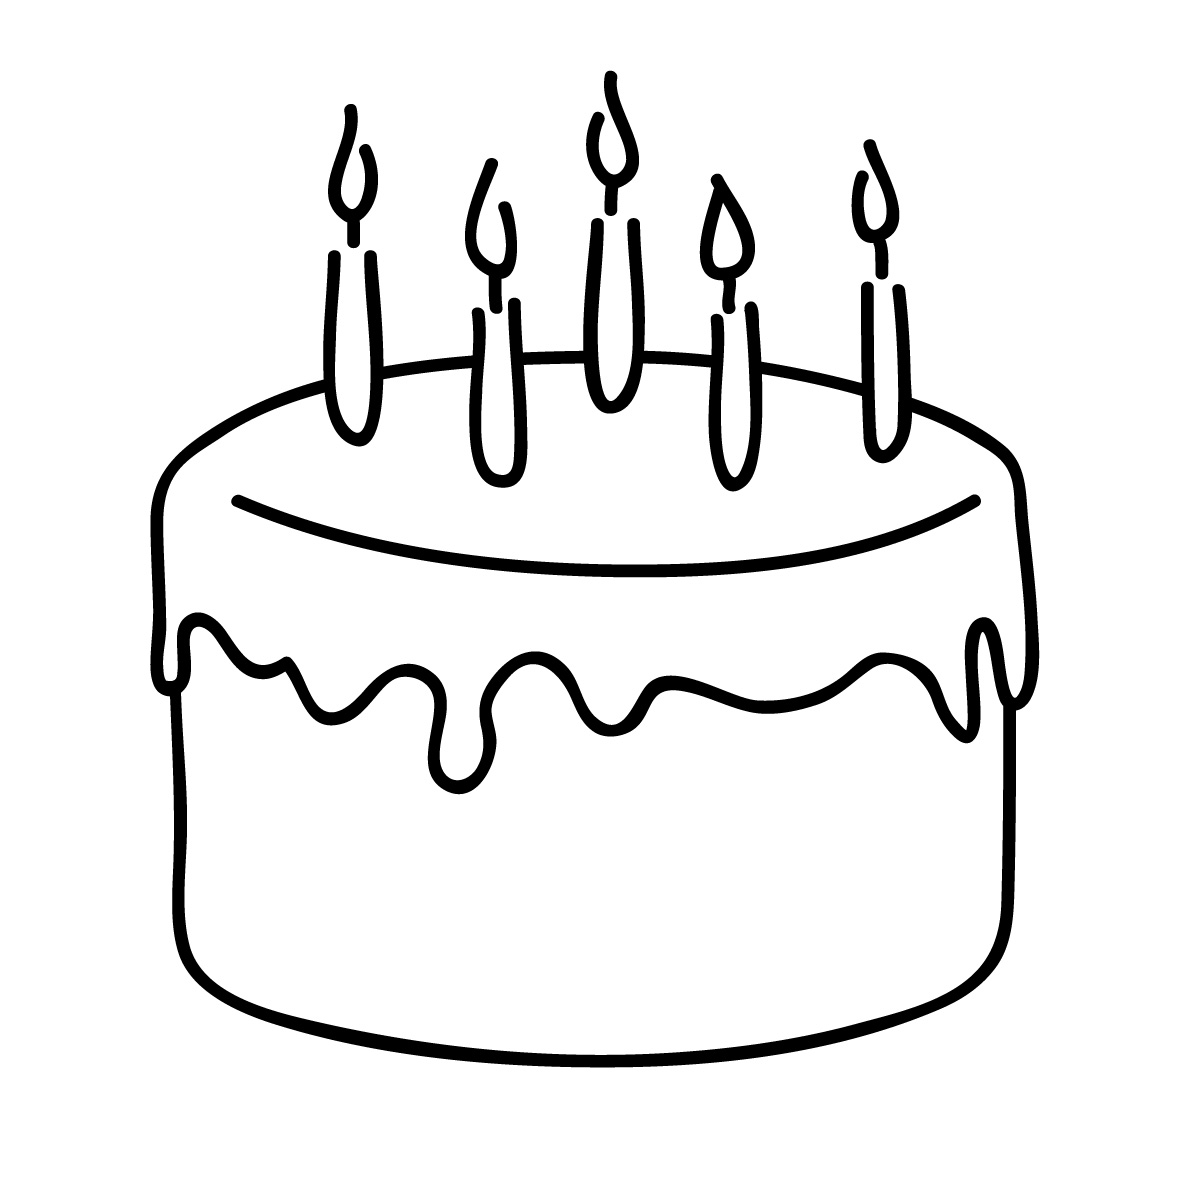 Happy Birthday Cake Clipart Black And White